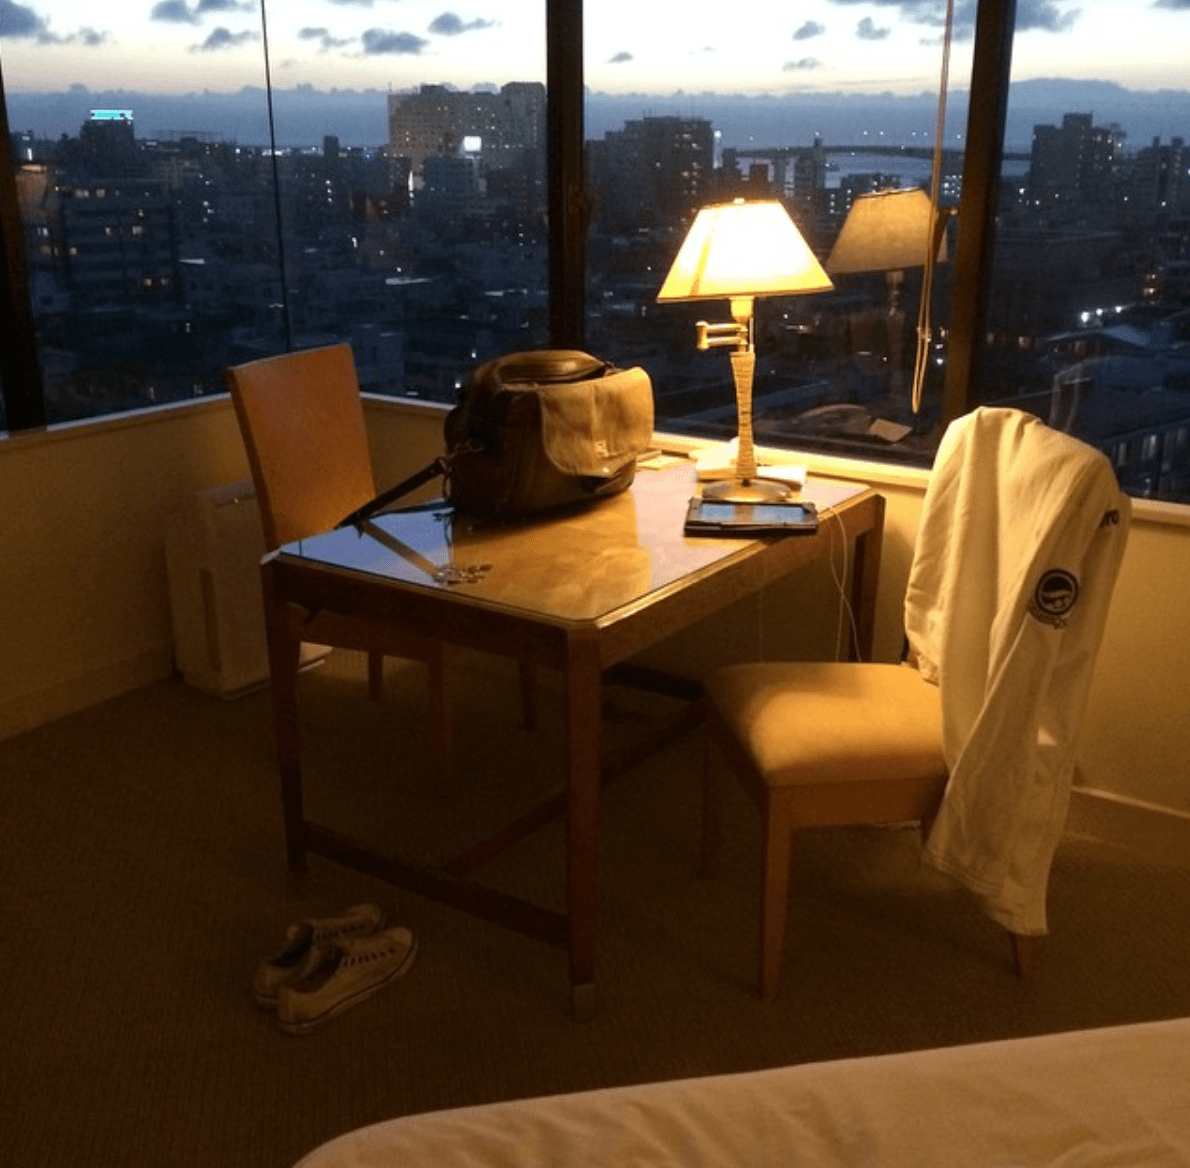 Anthony Bourdain's hotel in Japan